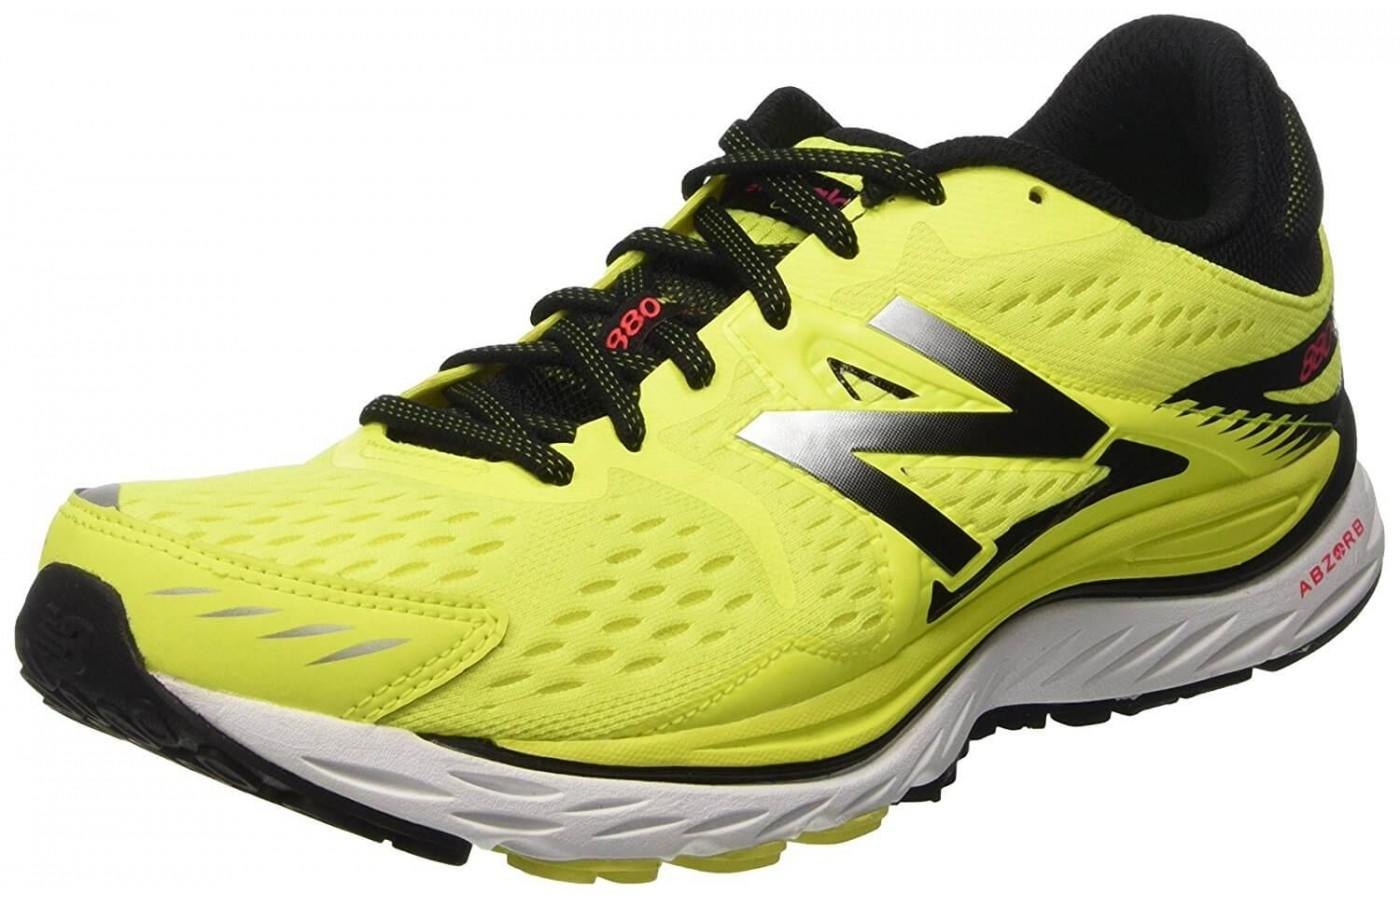 Upper of the New Balance 880 V7 is seamless